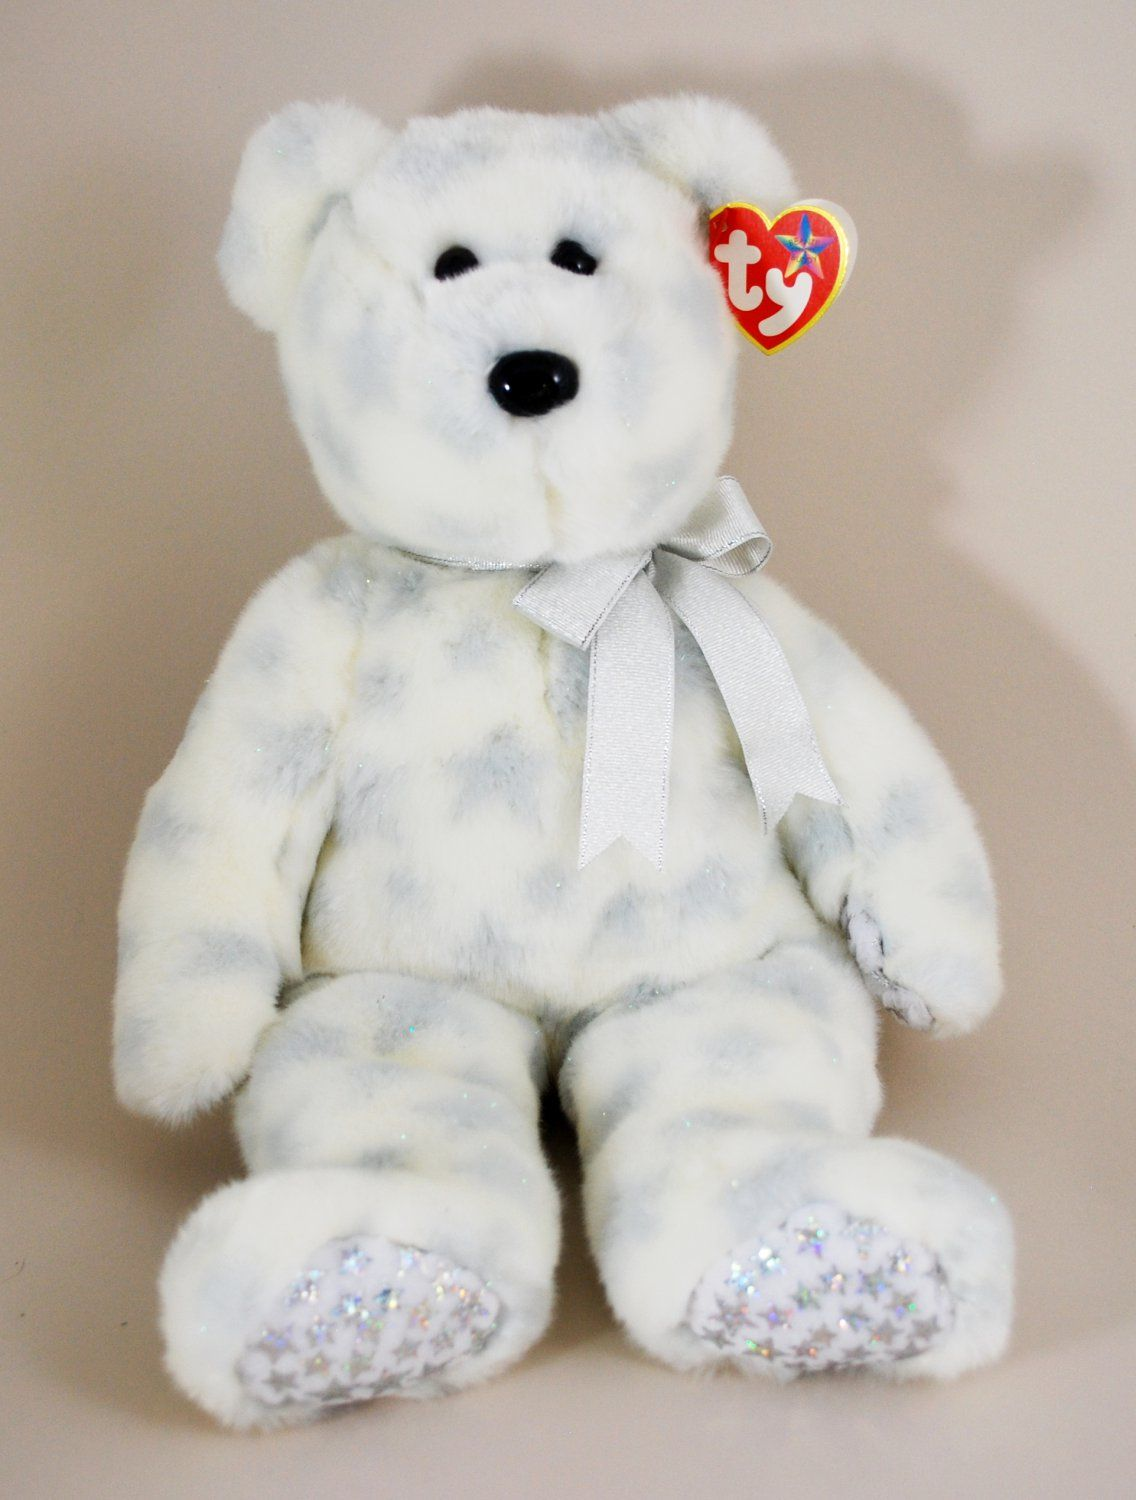 1a2d1ff4850 Ty The Beginning bear beanie buddy is a white and silver plush bear with  silver stars on his paw and feet pads. He has a silver ribbon around his  neck.